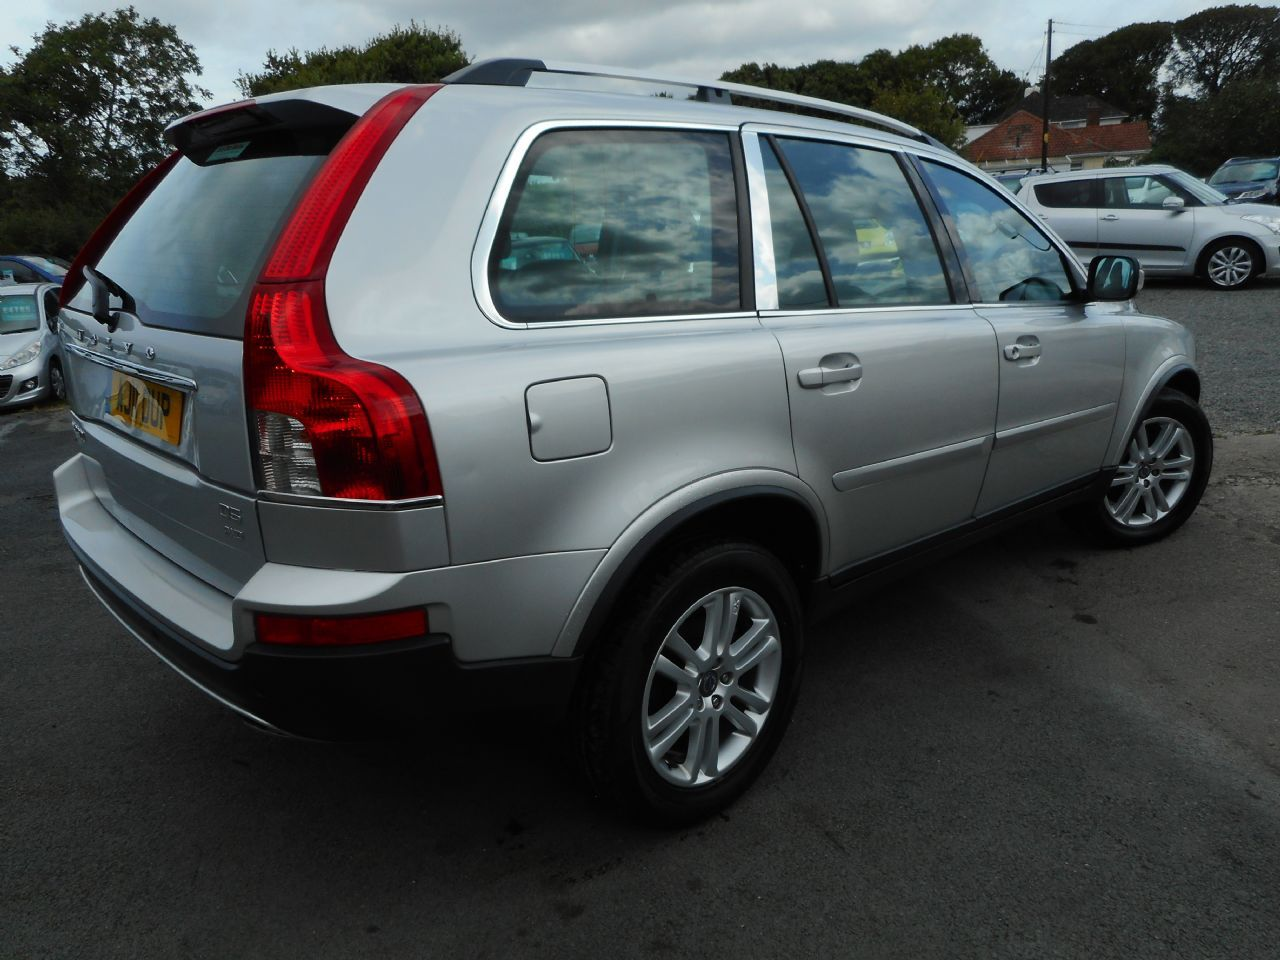 VOLVO XC90 D5 AWD (200 bhp) SE Lux Geartronic (2011) - Picture 3